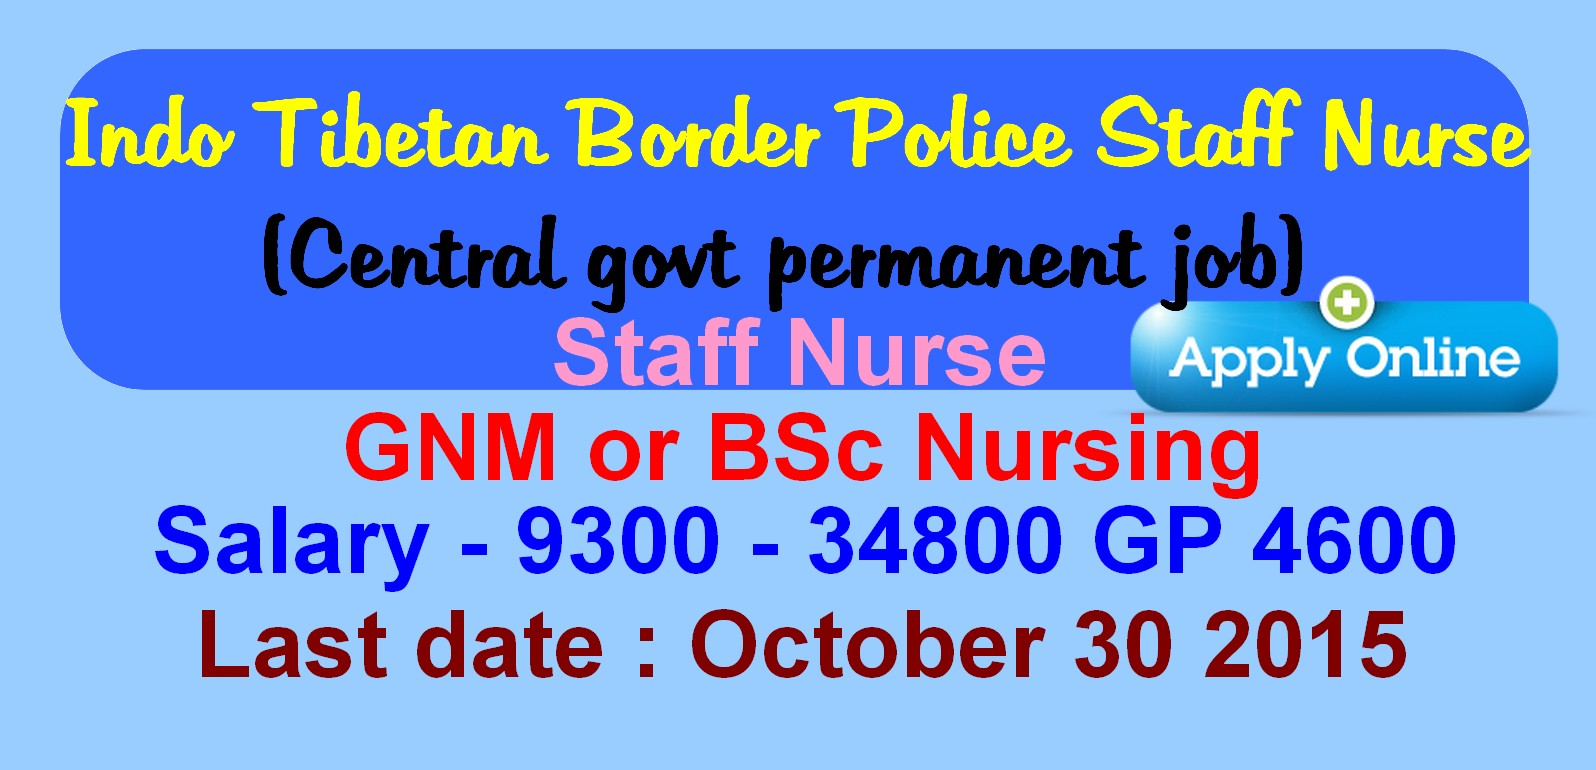 nurses job vacancy indo tibetan border police staff nurse indo tibetan border police staff nurse midwife vacancy 2015 central govt permanent job